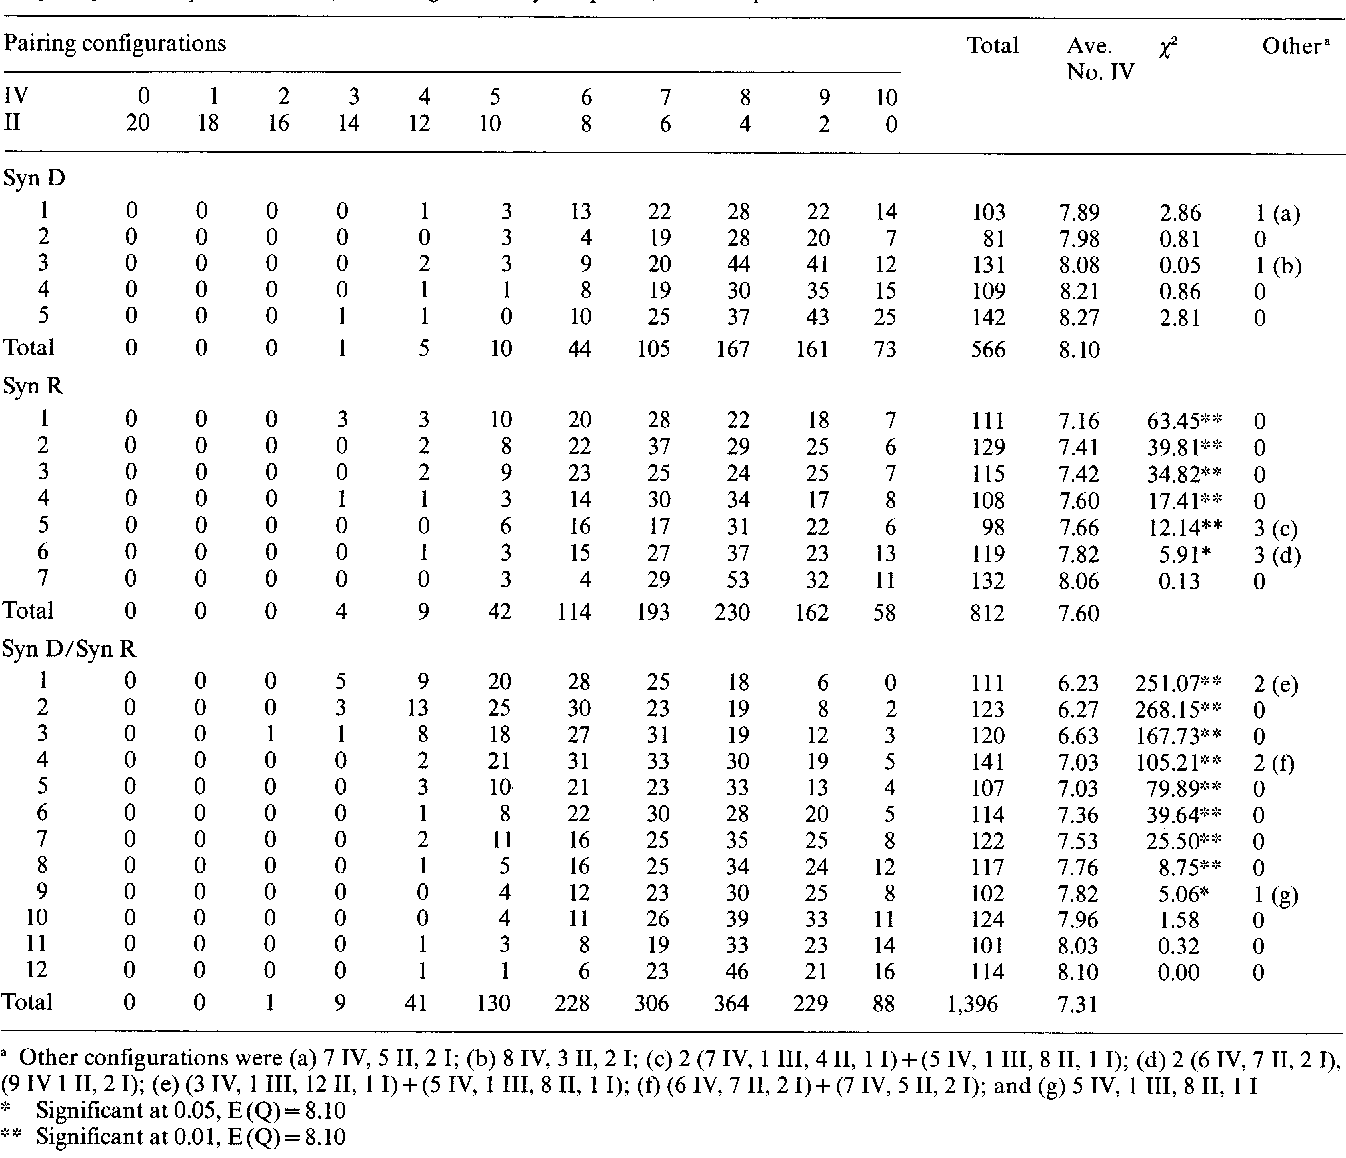 Table 1. Quadrivalent frequencies found in Syn D, Syn R, and Syn D/Syn R tetraploid plants. The Z 2 values were derived using the frequency of 81% quadrivalents (the average of the Syn D plants) as the expected value